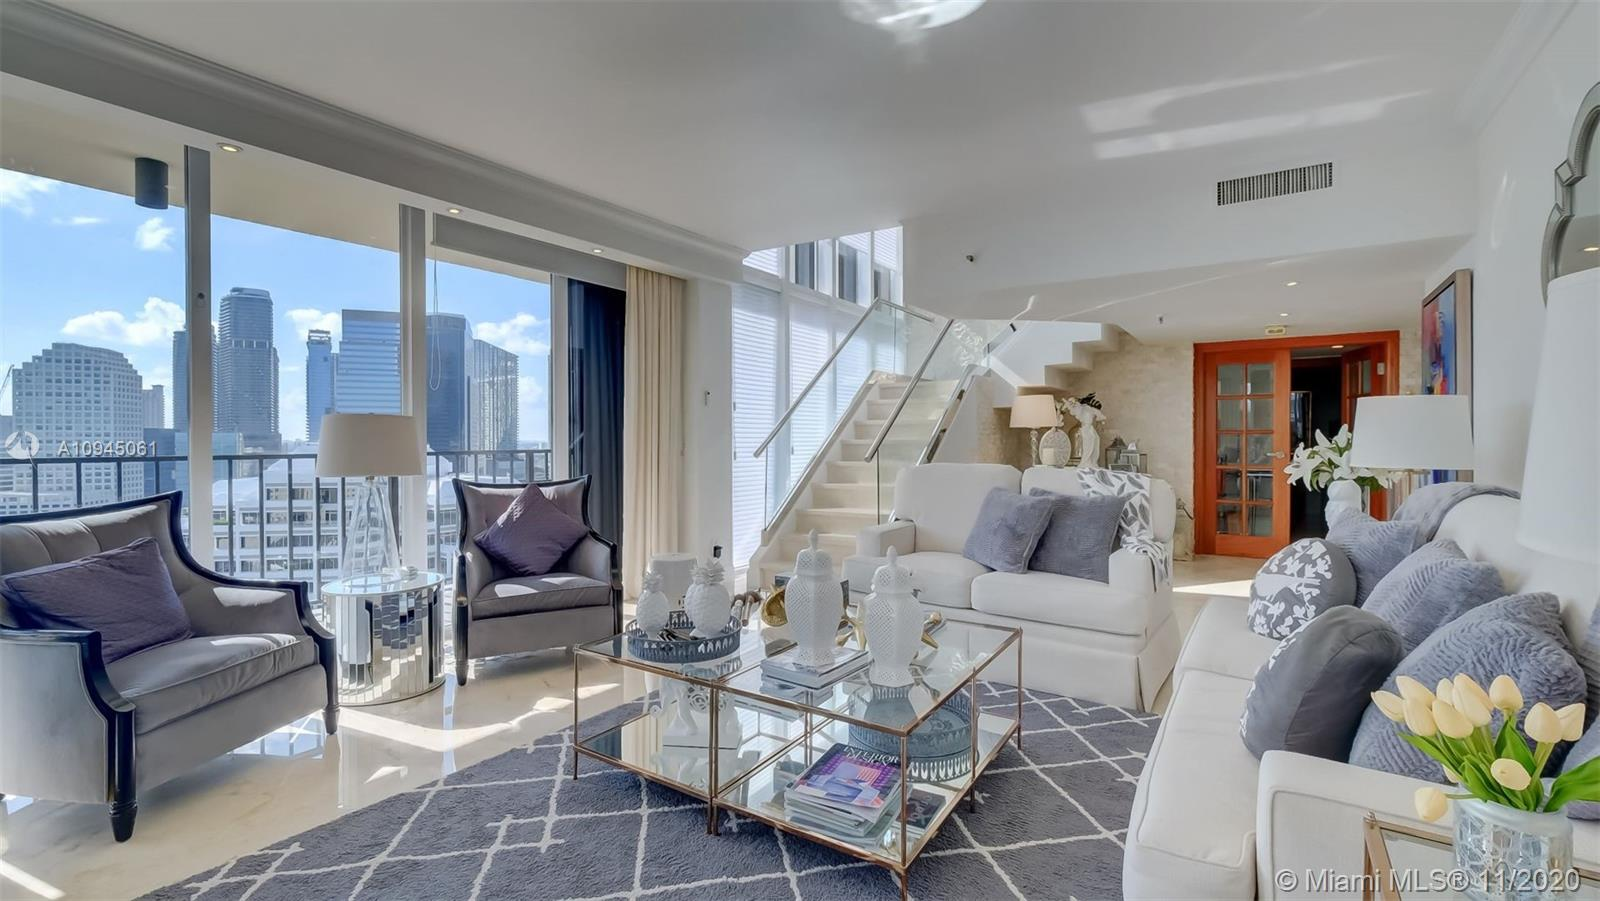 Contemporary, spacious, and recently renovated oceanfront 2-story residence in the prestigious Brickell Key. Live like royalty in this ample, luxurious penthouse with two entrances – direct elevator or interior staircase. The residence has a private elevator that opens up to its own private foyer. Accent walls throughout main floor and staircase to second floor. High-end stainless-steel appliances make the kitchen a showstopper along with glossy, modern cabinets and pantry, and quartz countertops. Floor to ceiling glass impact windows allow you to take in the beautiful ocean view from any room! Polished large format tiles throughout adds elegance and favors the openness of this beautiful 4 bed/3.5bath penthouse.Oversized master bedroom and bathroom to enjoy your year-round resort feel.